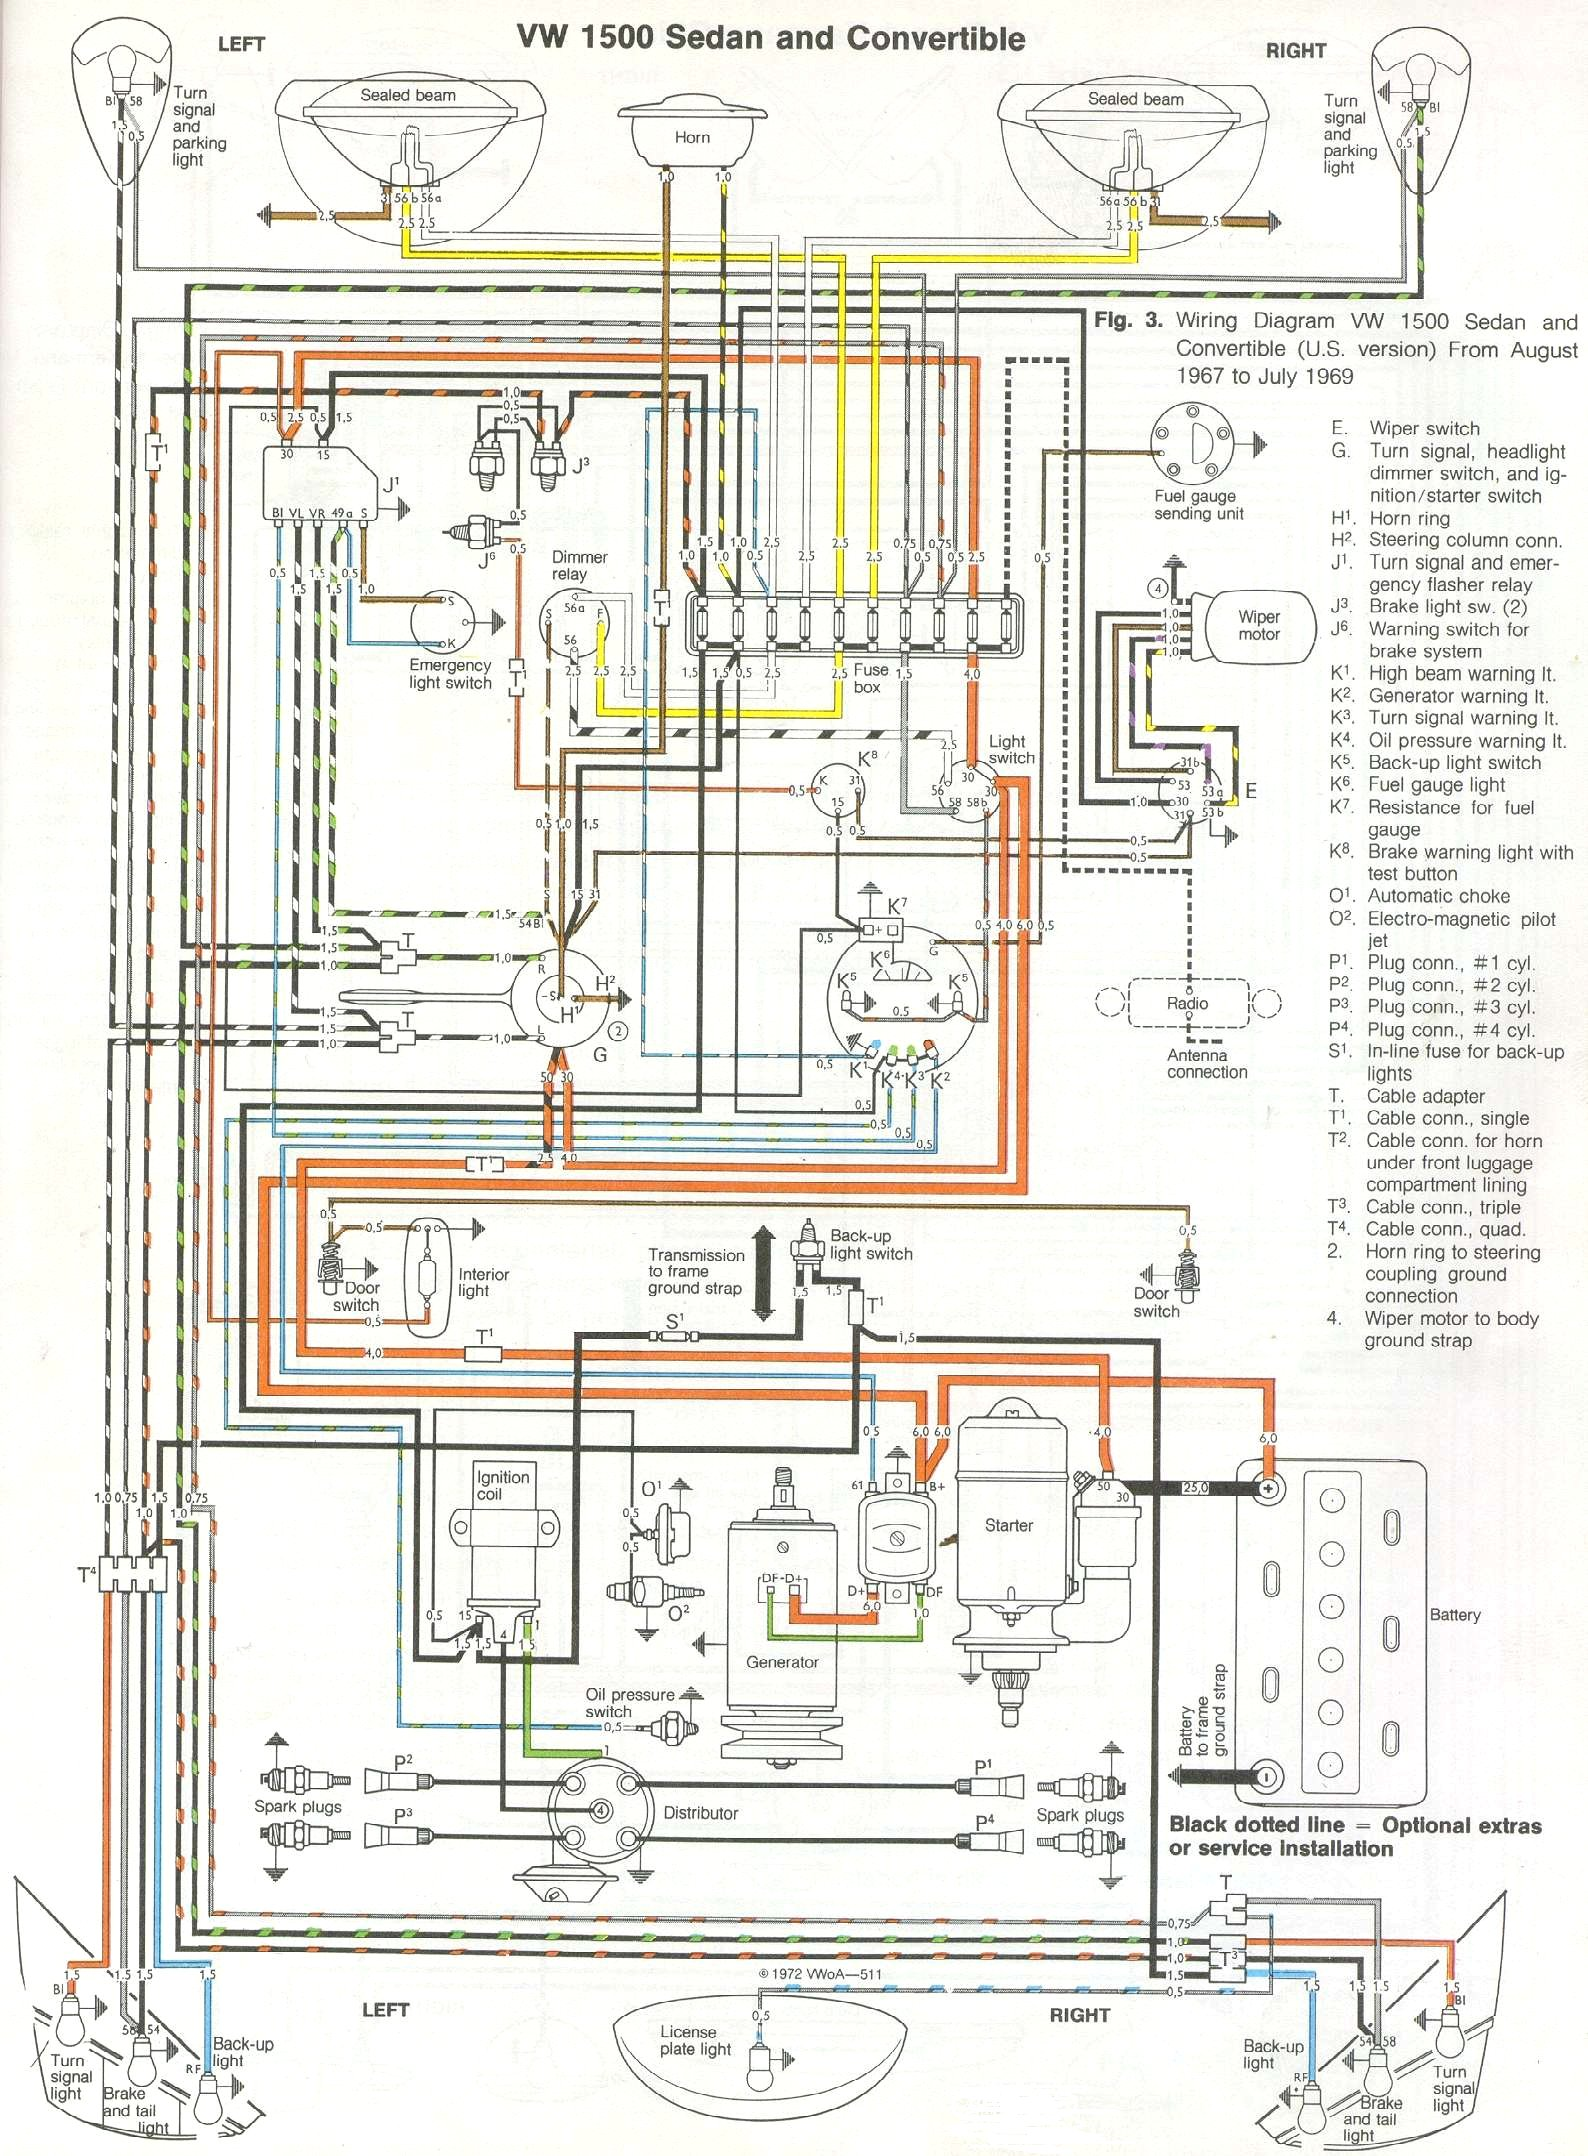 1969-71 beetle wiring diagram | thegoldenbug.com 71 bug wiring diagram